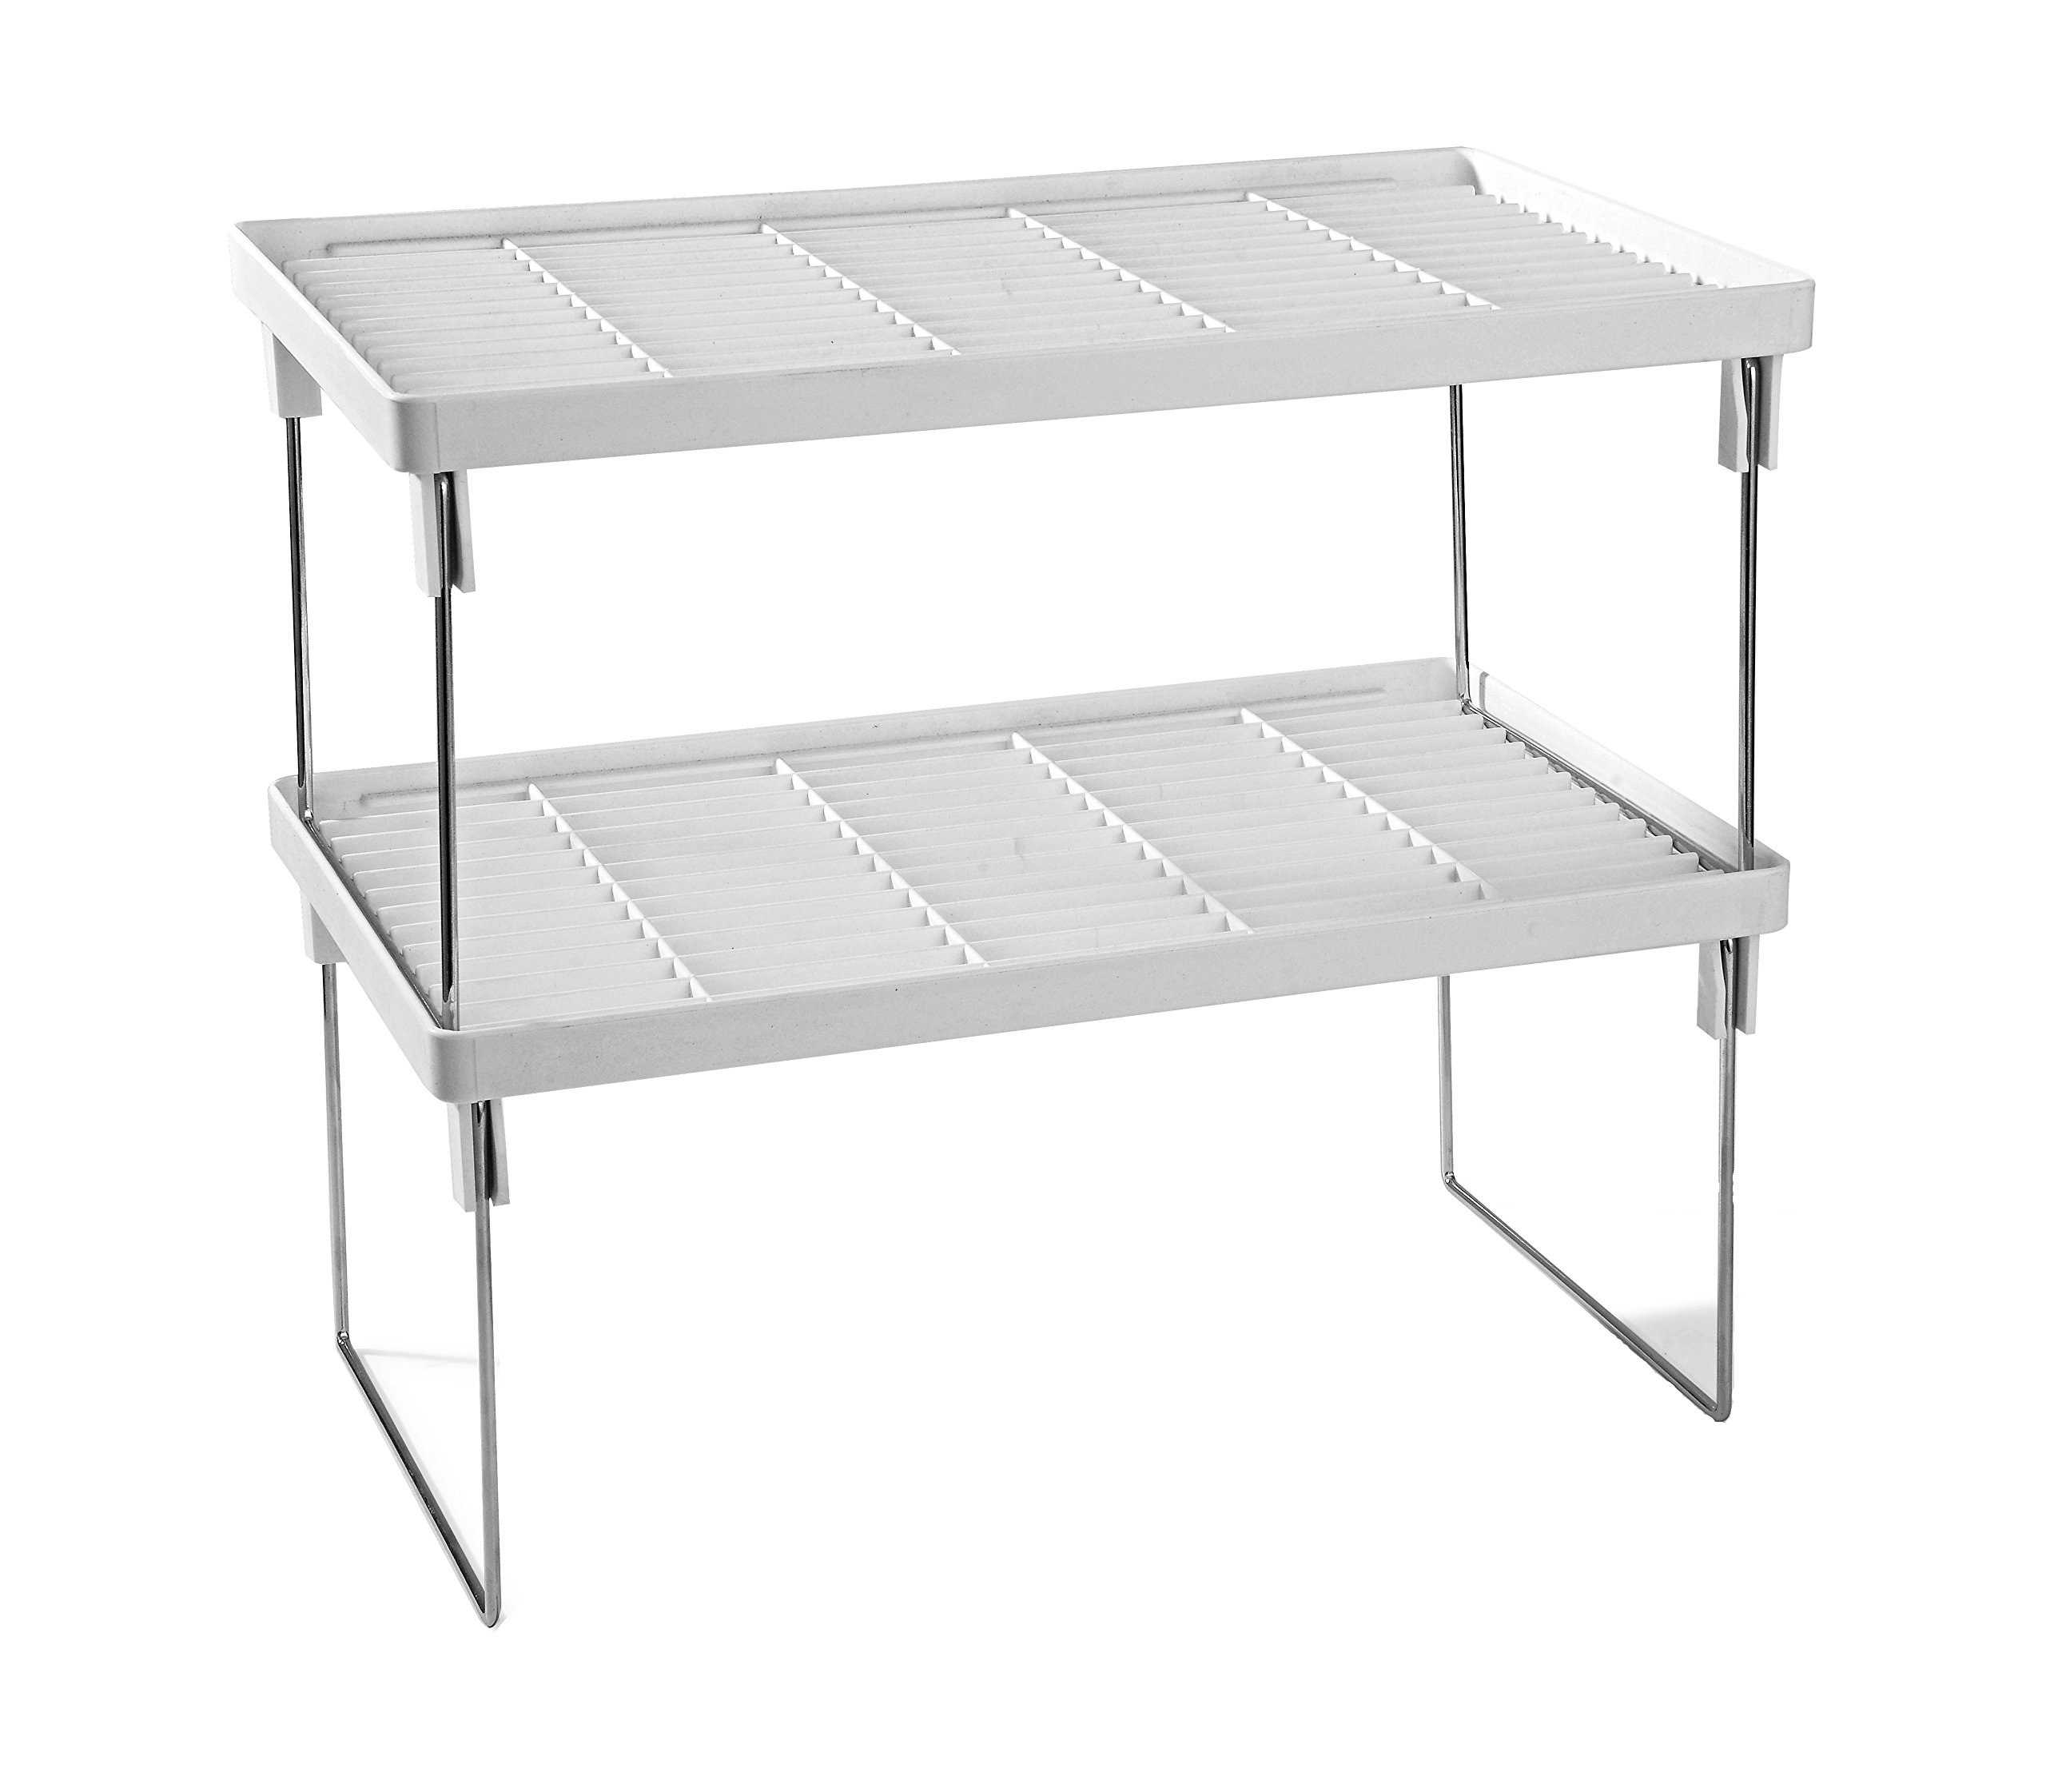 Disha Abs Plastic Folding Rack, 15.5X9.5X7.2, 2-Piece, White And Silver product image